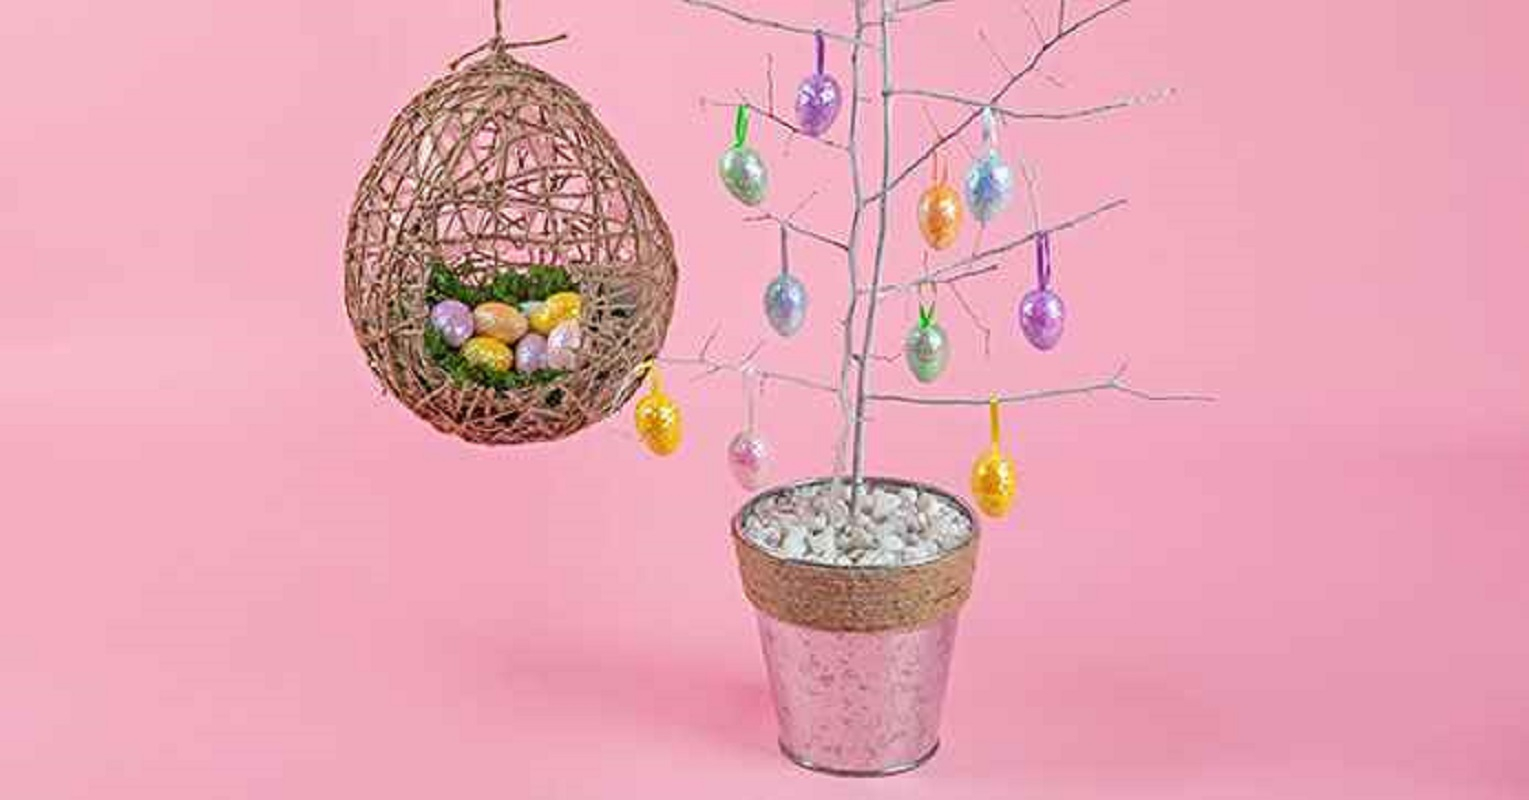 7 DIY Ideas With Easter Eggs To Try At Home That Is Exciting And Fun